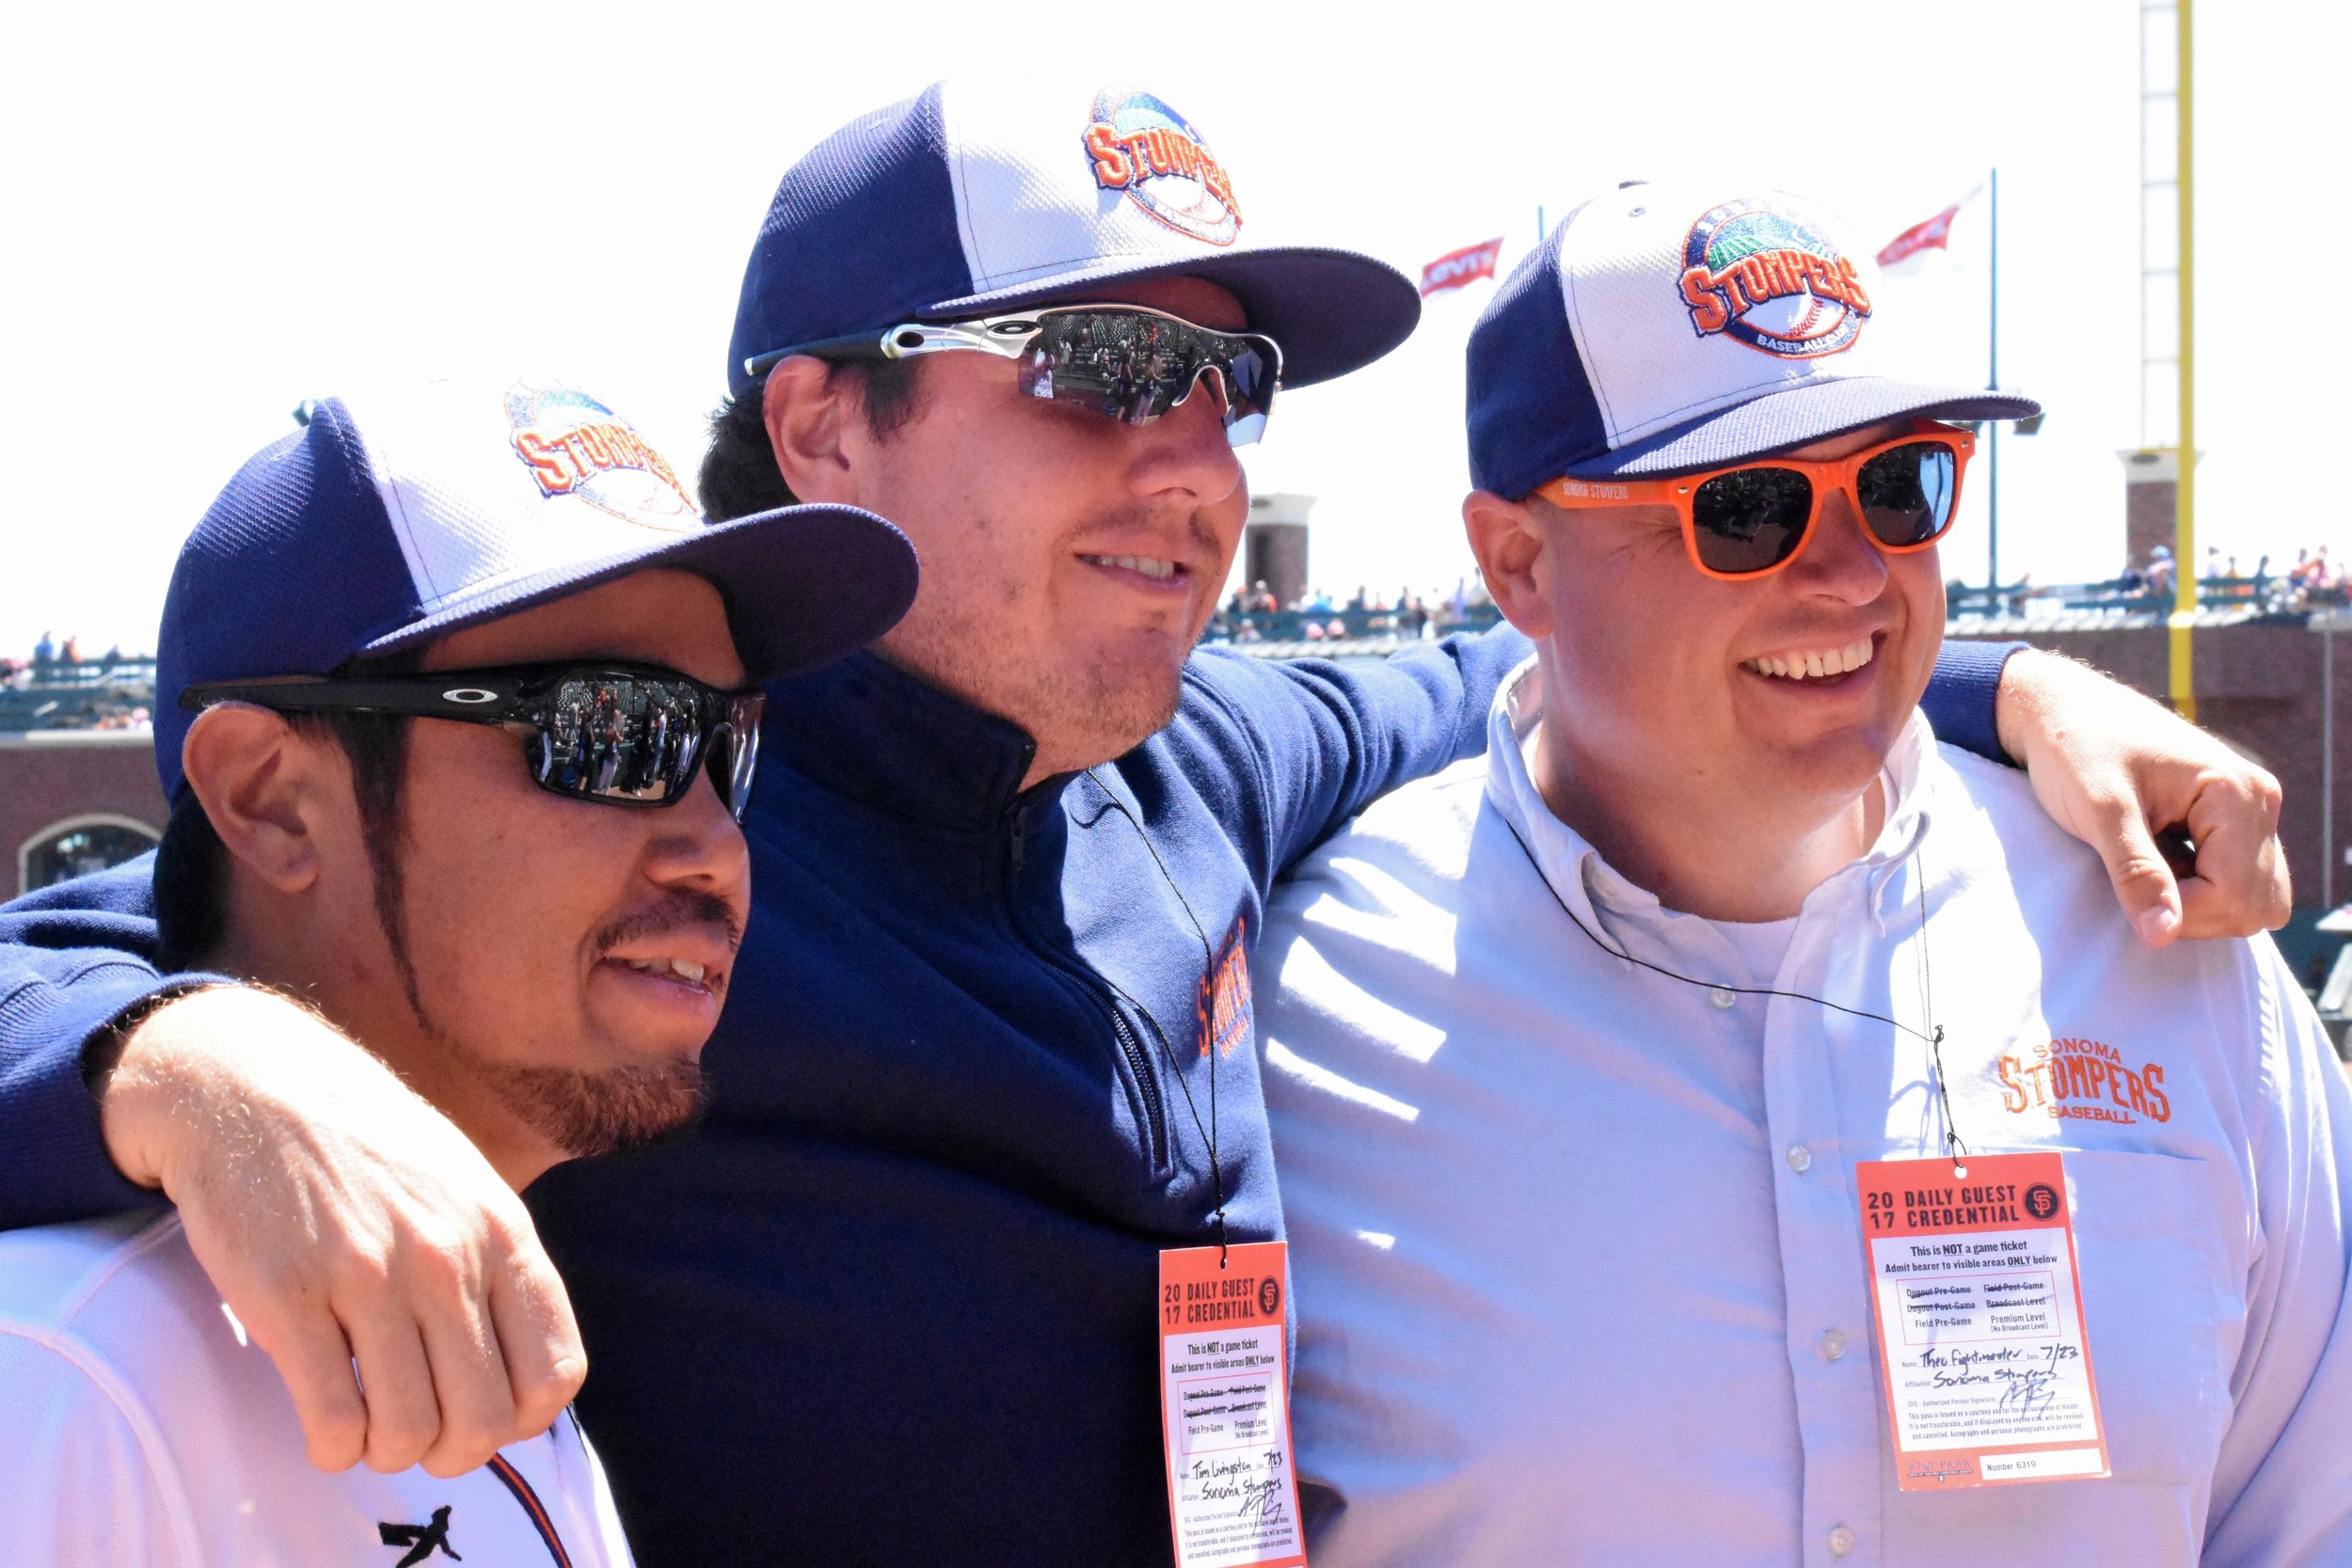 """Takashi Miyoshi, Tim Livingston and Theo Fightmaster take part in a pre-game ceremony on """"Girls Day"""" at AT&T Park on Sunday. (James W. Toy III / Sonoma Stompers)"""